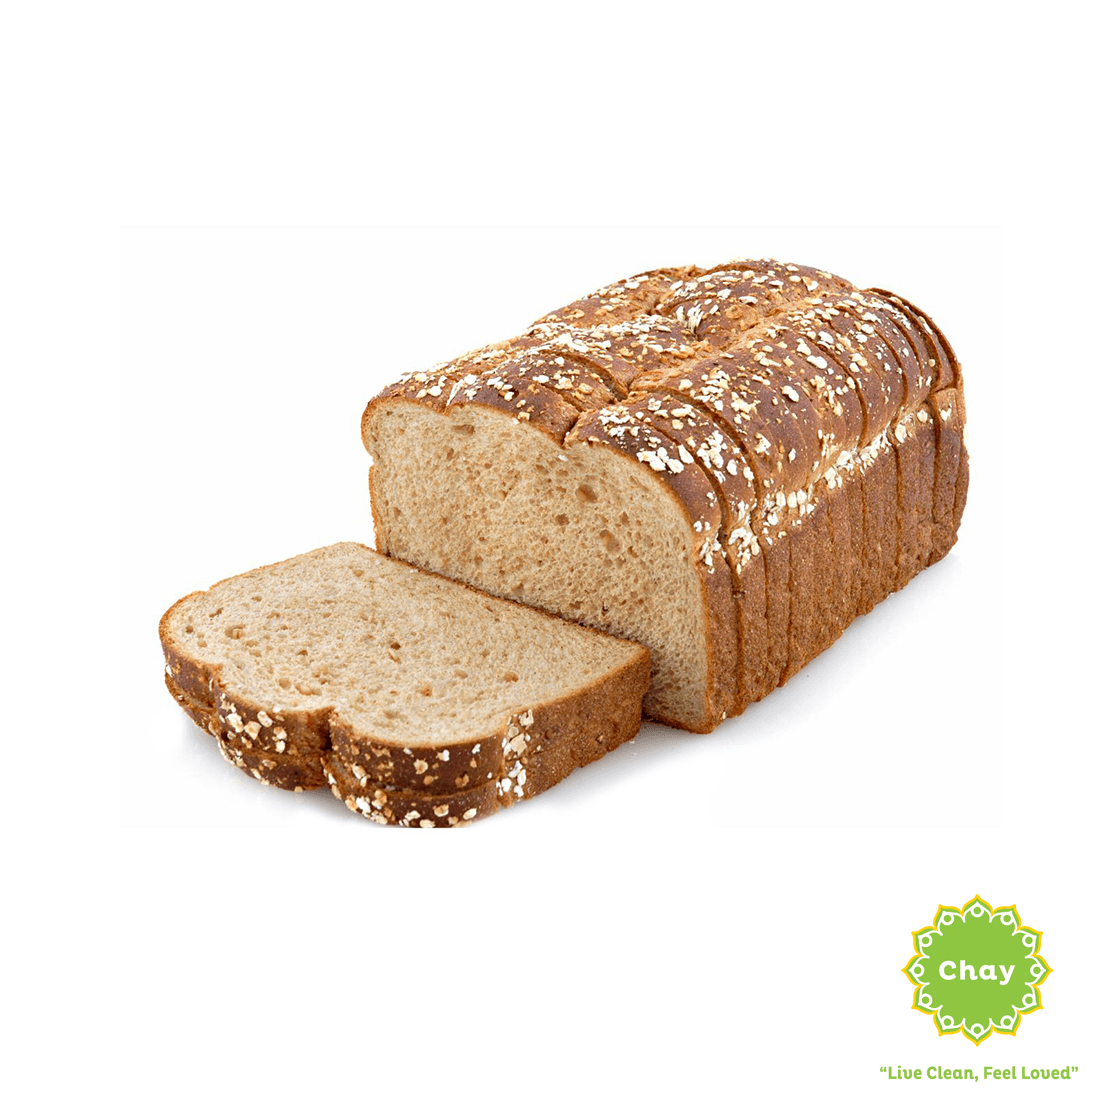 [BK003] 12 Grain Bread (V) en Harvest Baking 1/2 Loaf (300g)